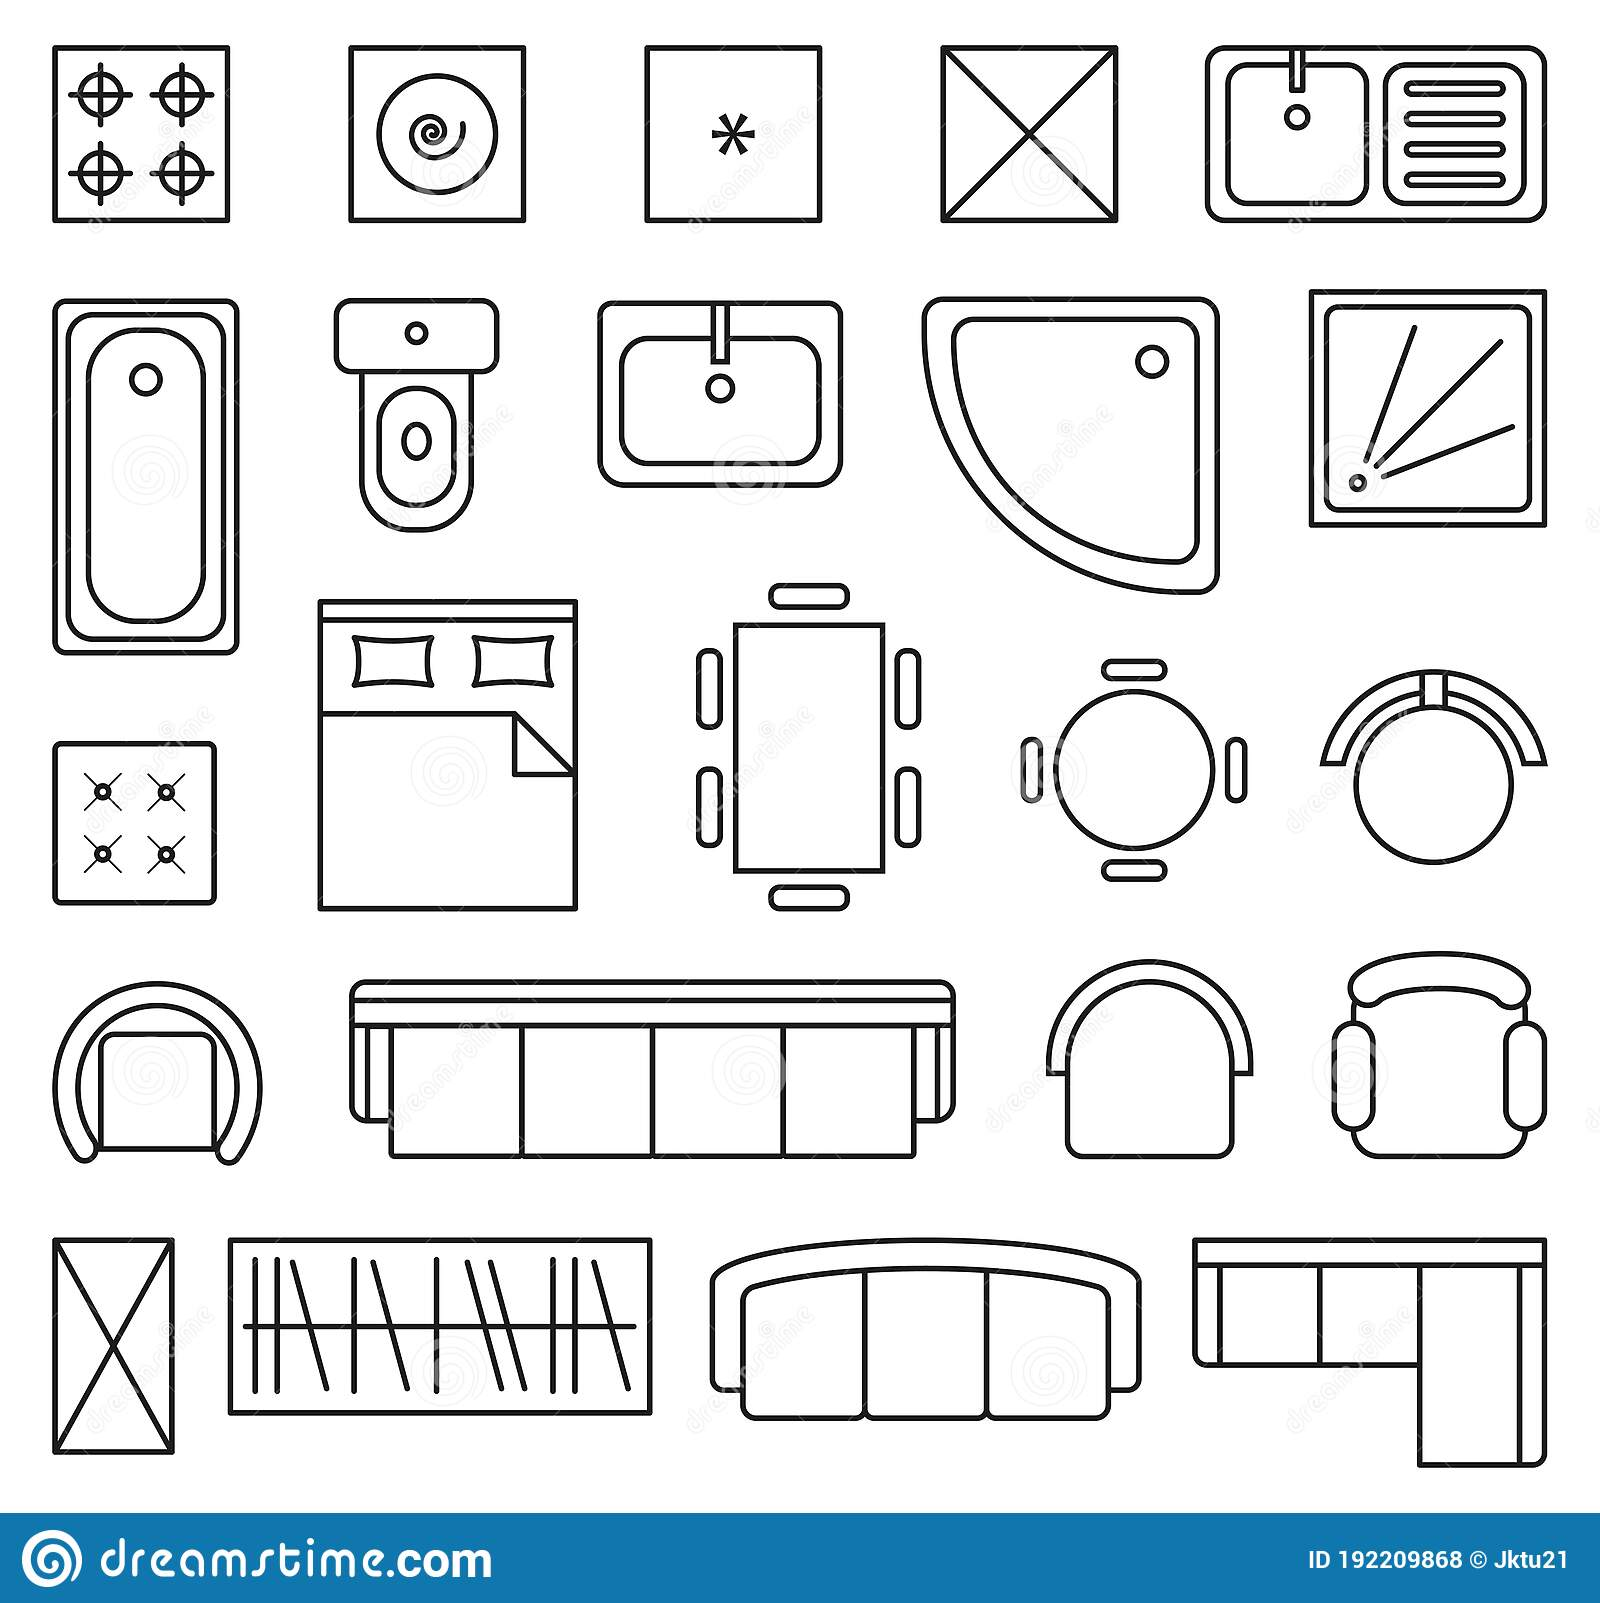 Furniture Outline Plan Icons Stock Illustrations 546 Furniture Outline Plan Icons Stock Illustrations Vectors Clipart Dreamstime